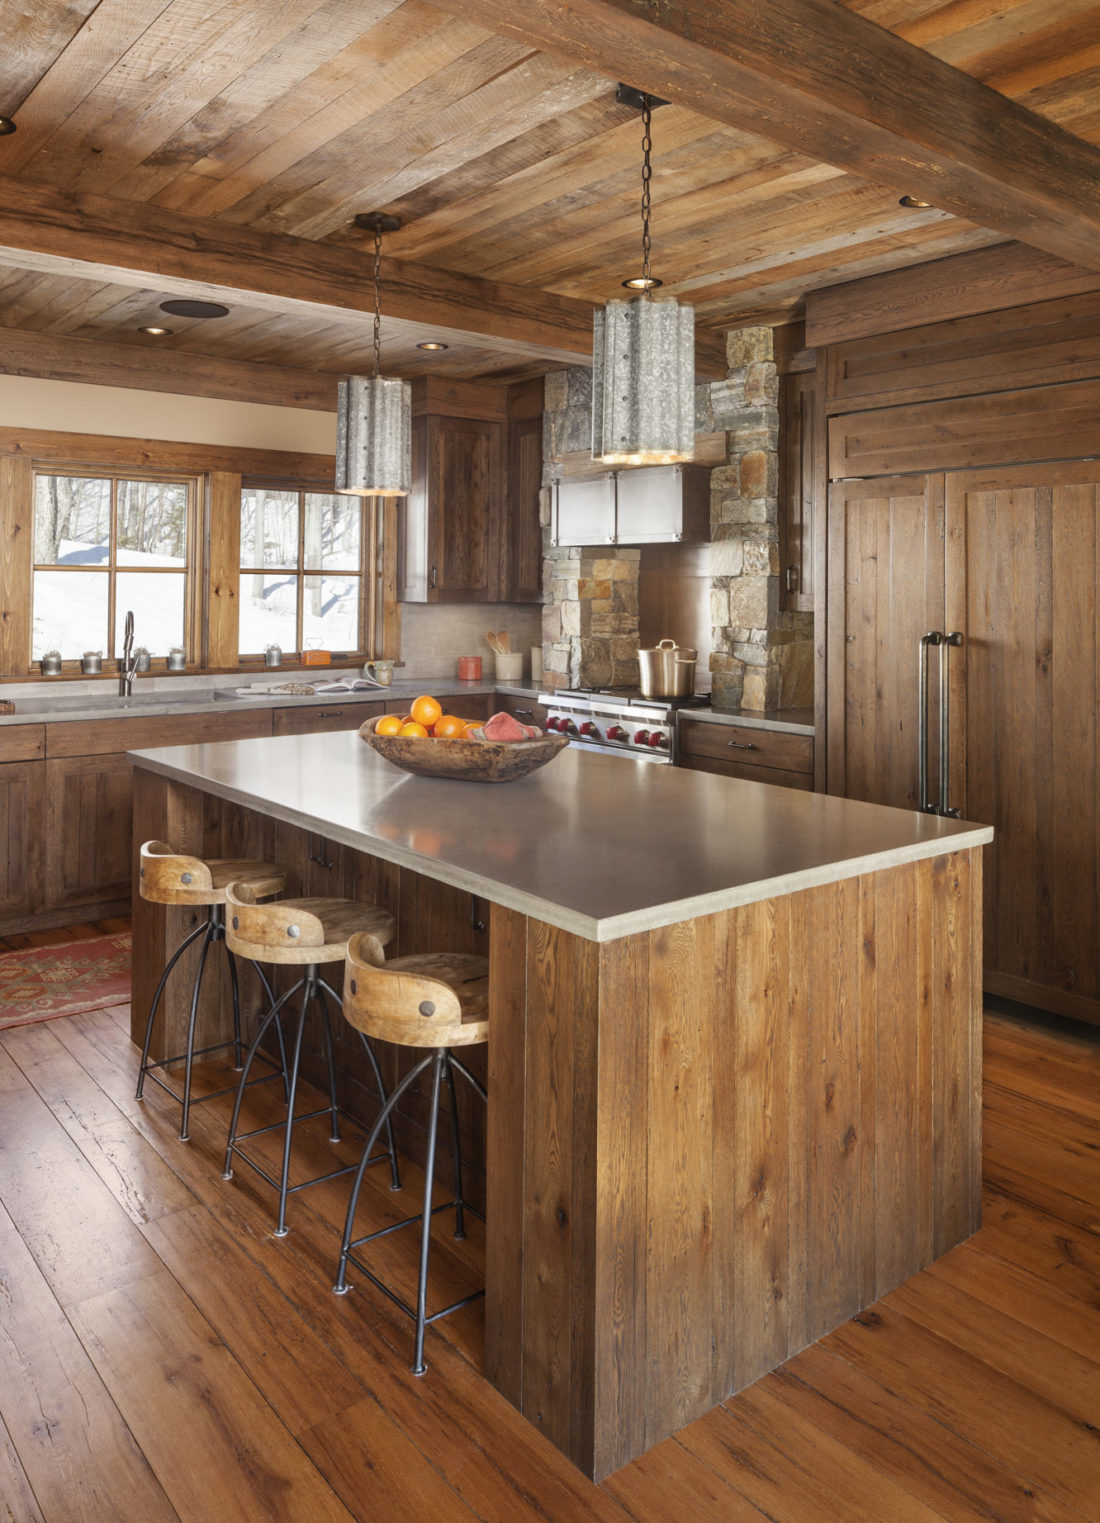 Kitchens With Wood Paneling: White Oak Interior Paneling And Flooring